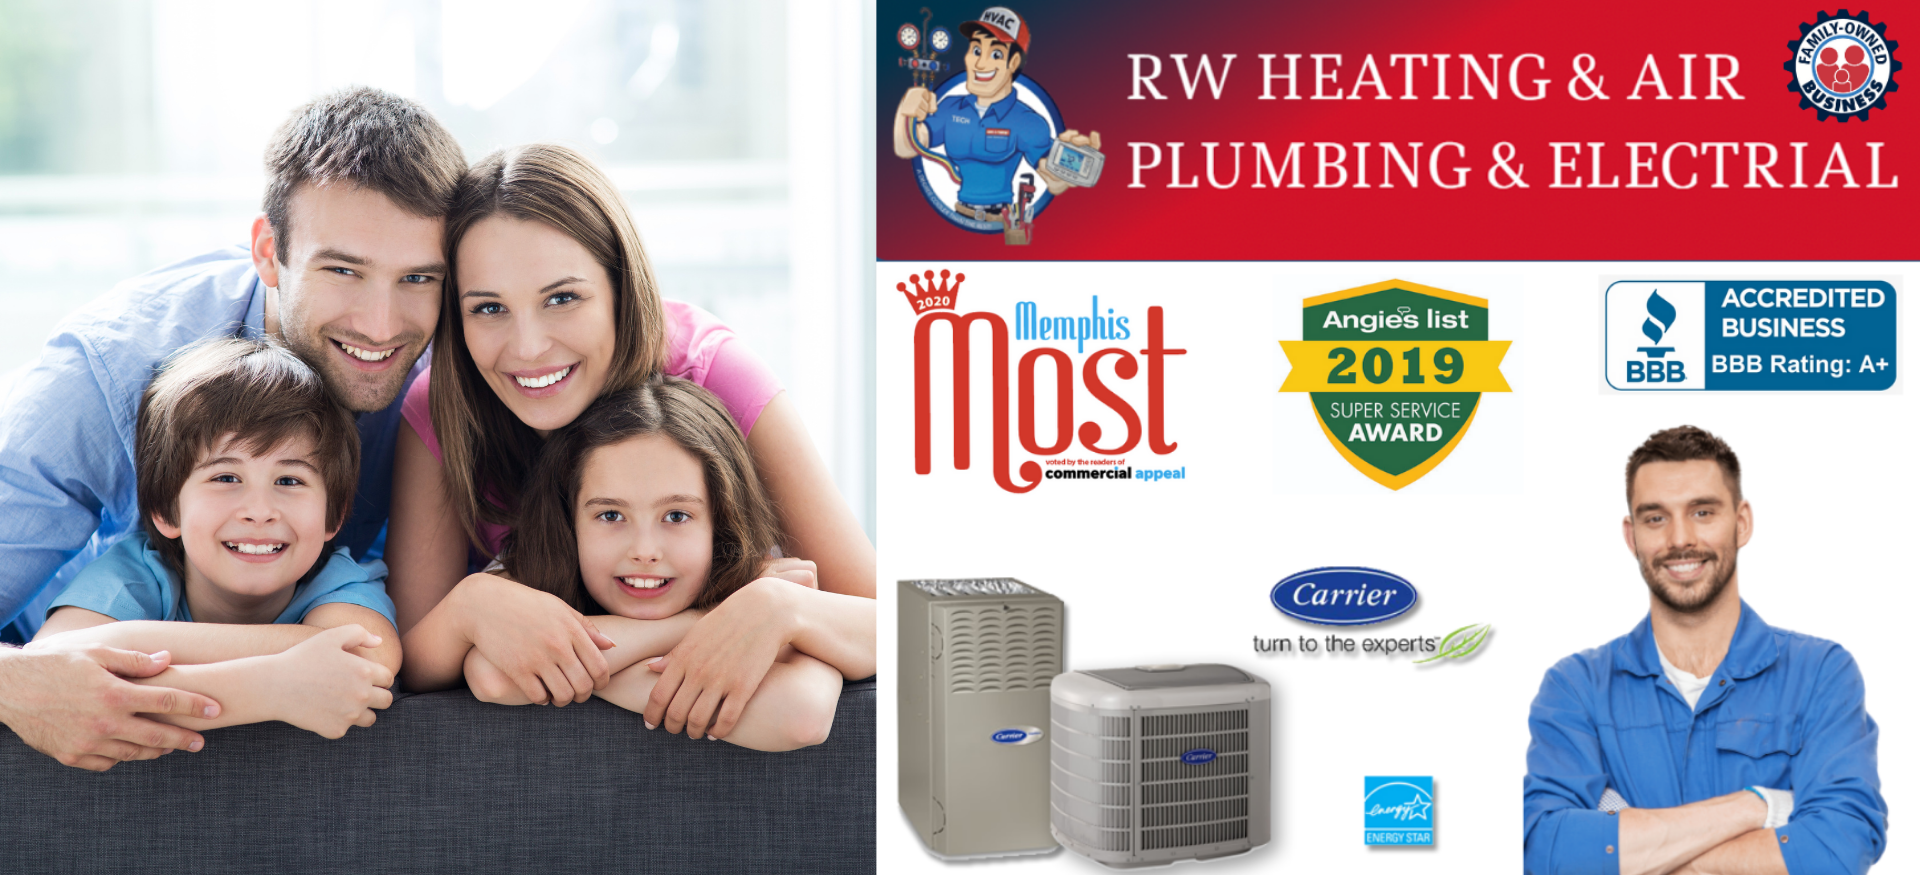 RW Heating & Air Plumbing & Electrical reviews | Heating & Air Conditioning/HVAC at 641 Old Hwy 51 North - Nesbit MS